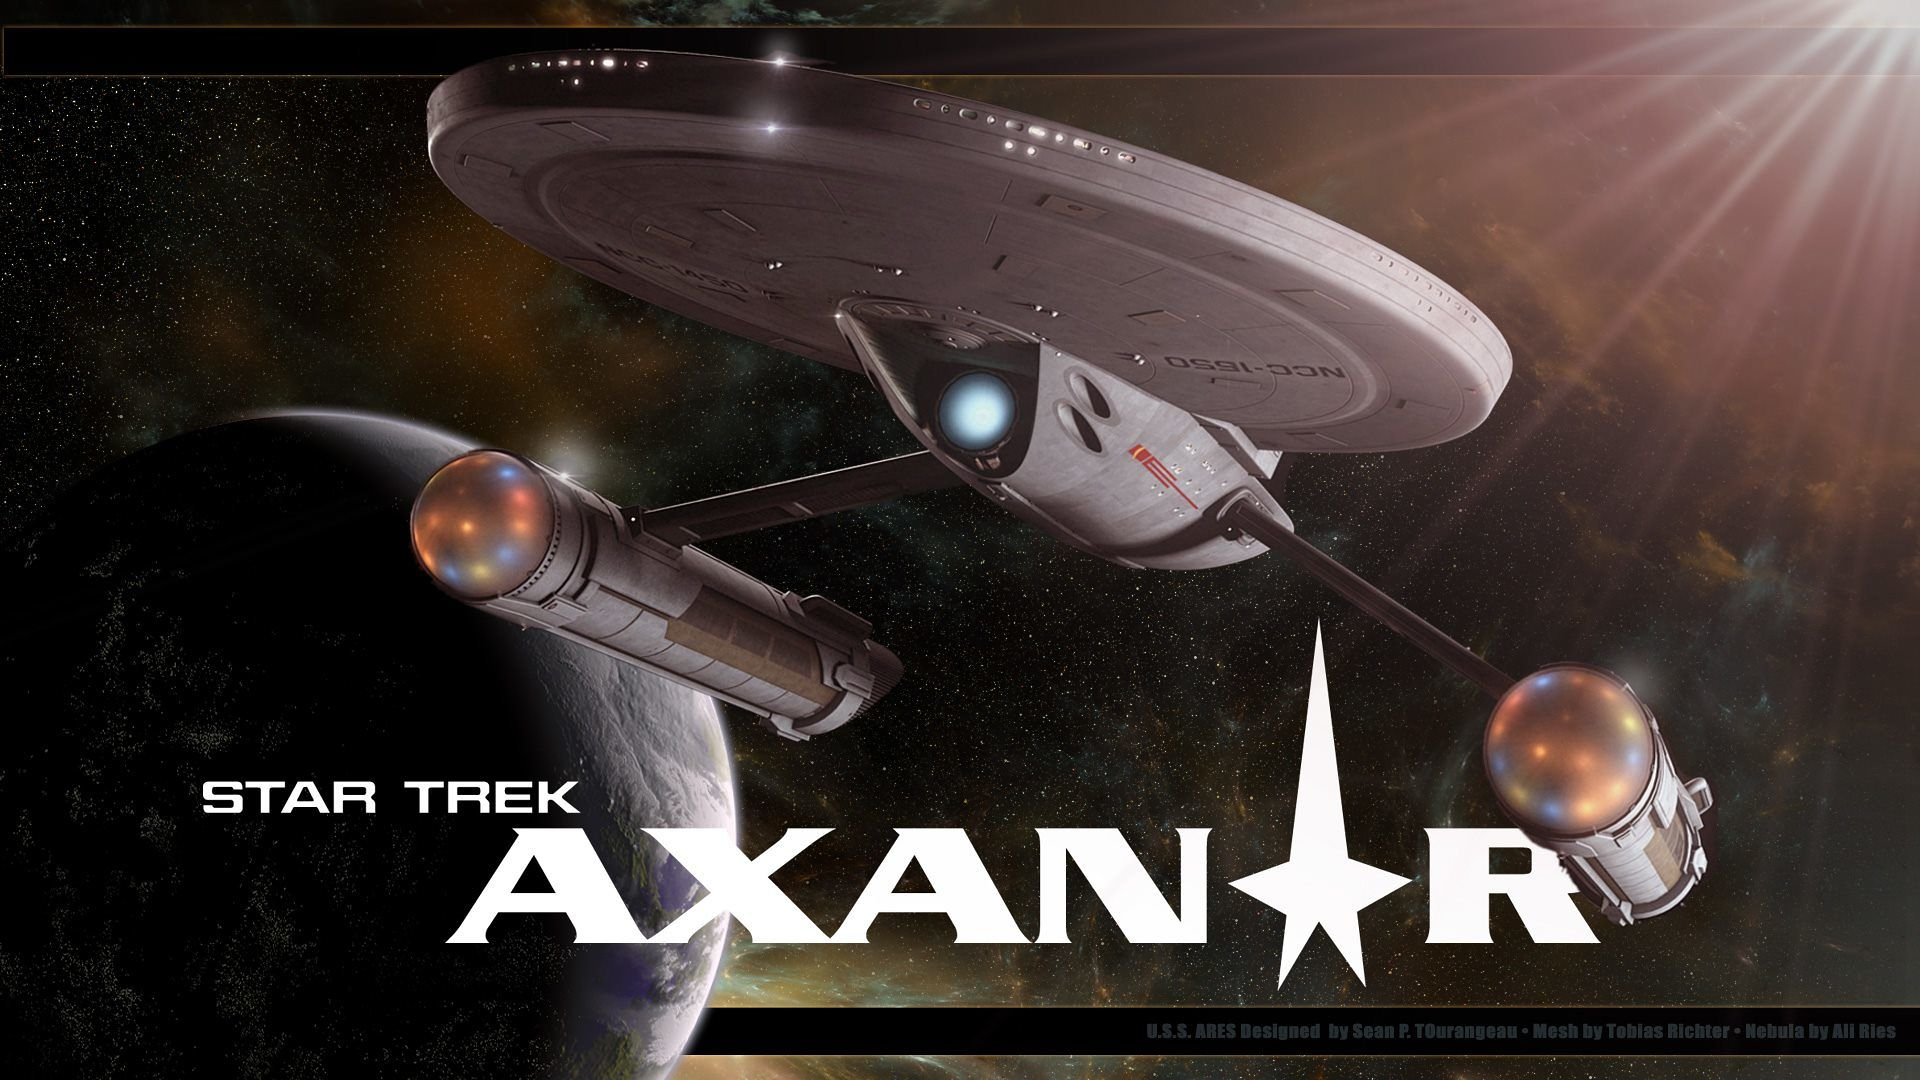 10382616_603952263052634_8592275821444827907_o-an-early-look-at-star-trek-axanar-jpeg-172290[1]